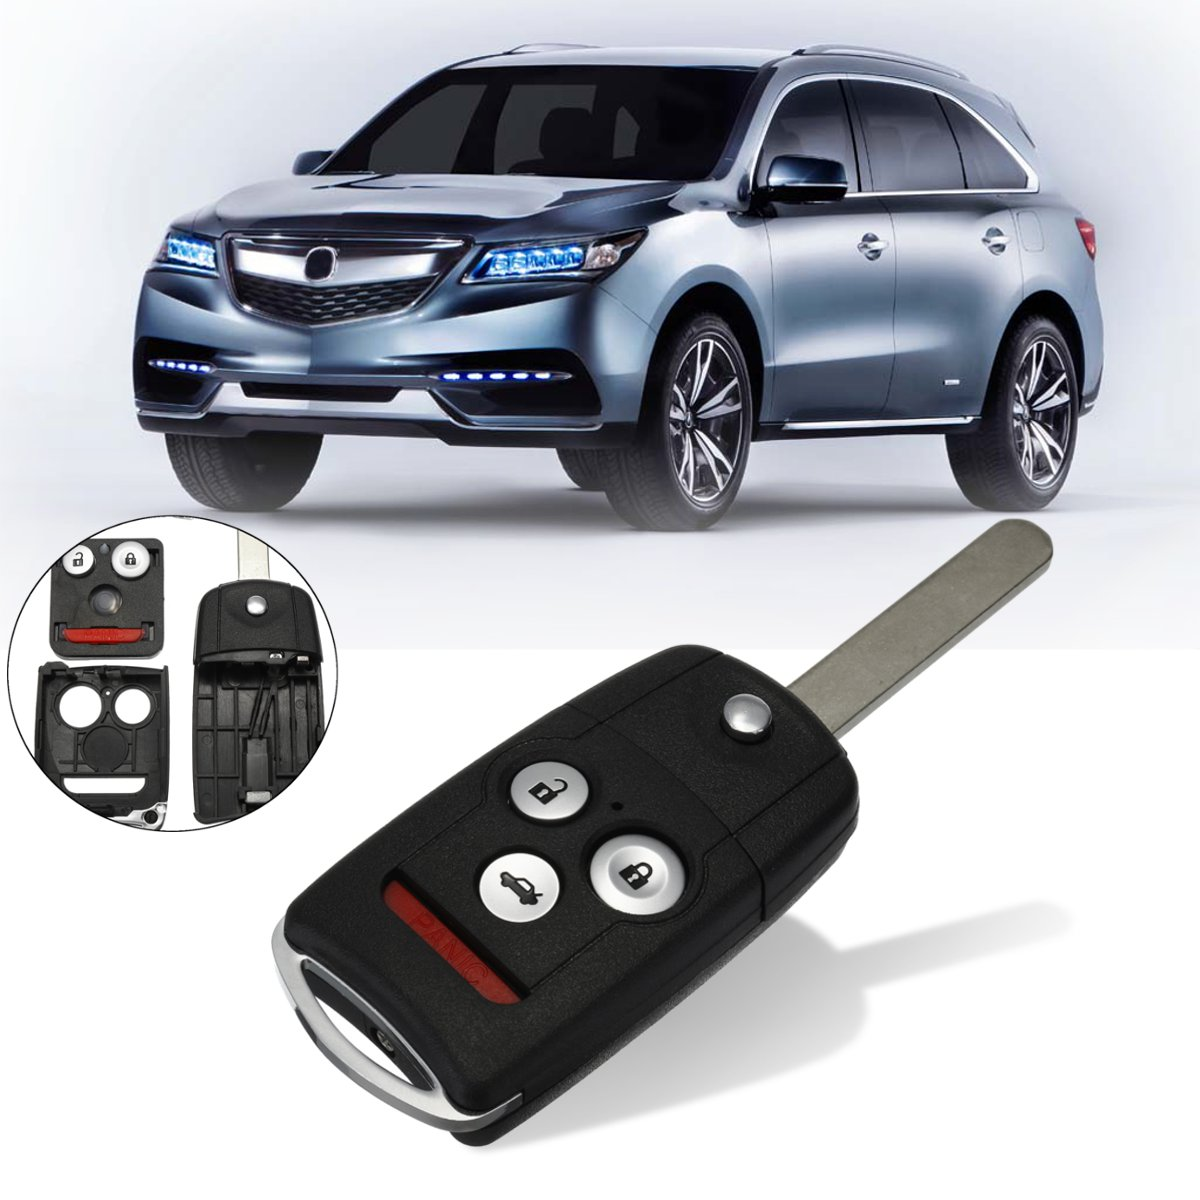 #KK-2620 3+1 Buttons Remote Flip Car Key Fob Shell Case w/ Uncut Blade For Honda/Accord/Acura TL TSX MDX RDX ZDX 2007 2008 2009#KK-2620 3+1 Buttons Remote Flip Car Key Fob Shell Case w/ Uncut Blade For Honda/Accord/Acura TL TSX MDX RDX ZDX 2007 2008 2009